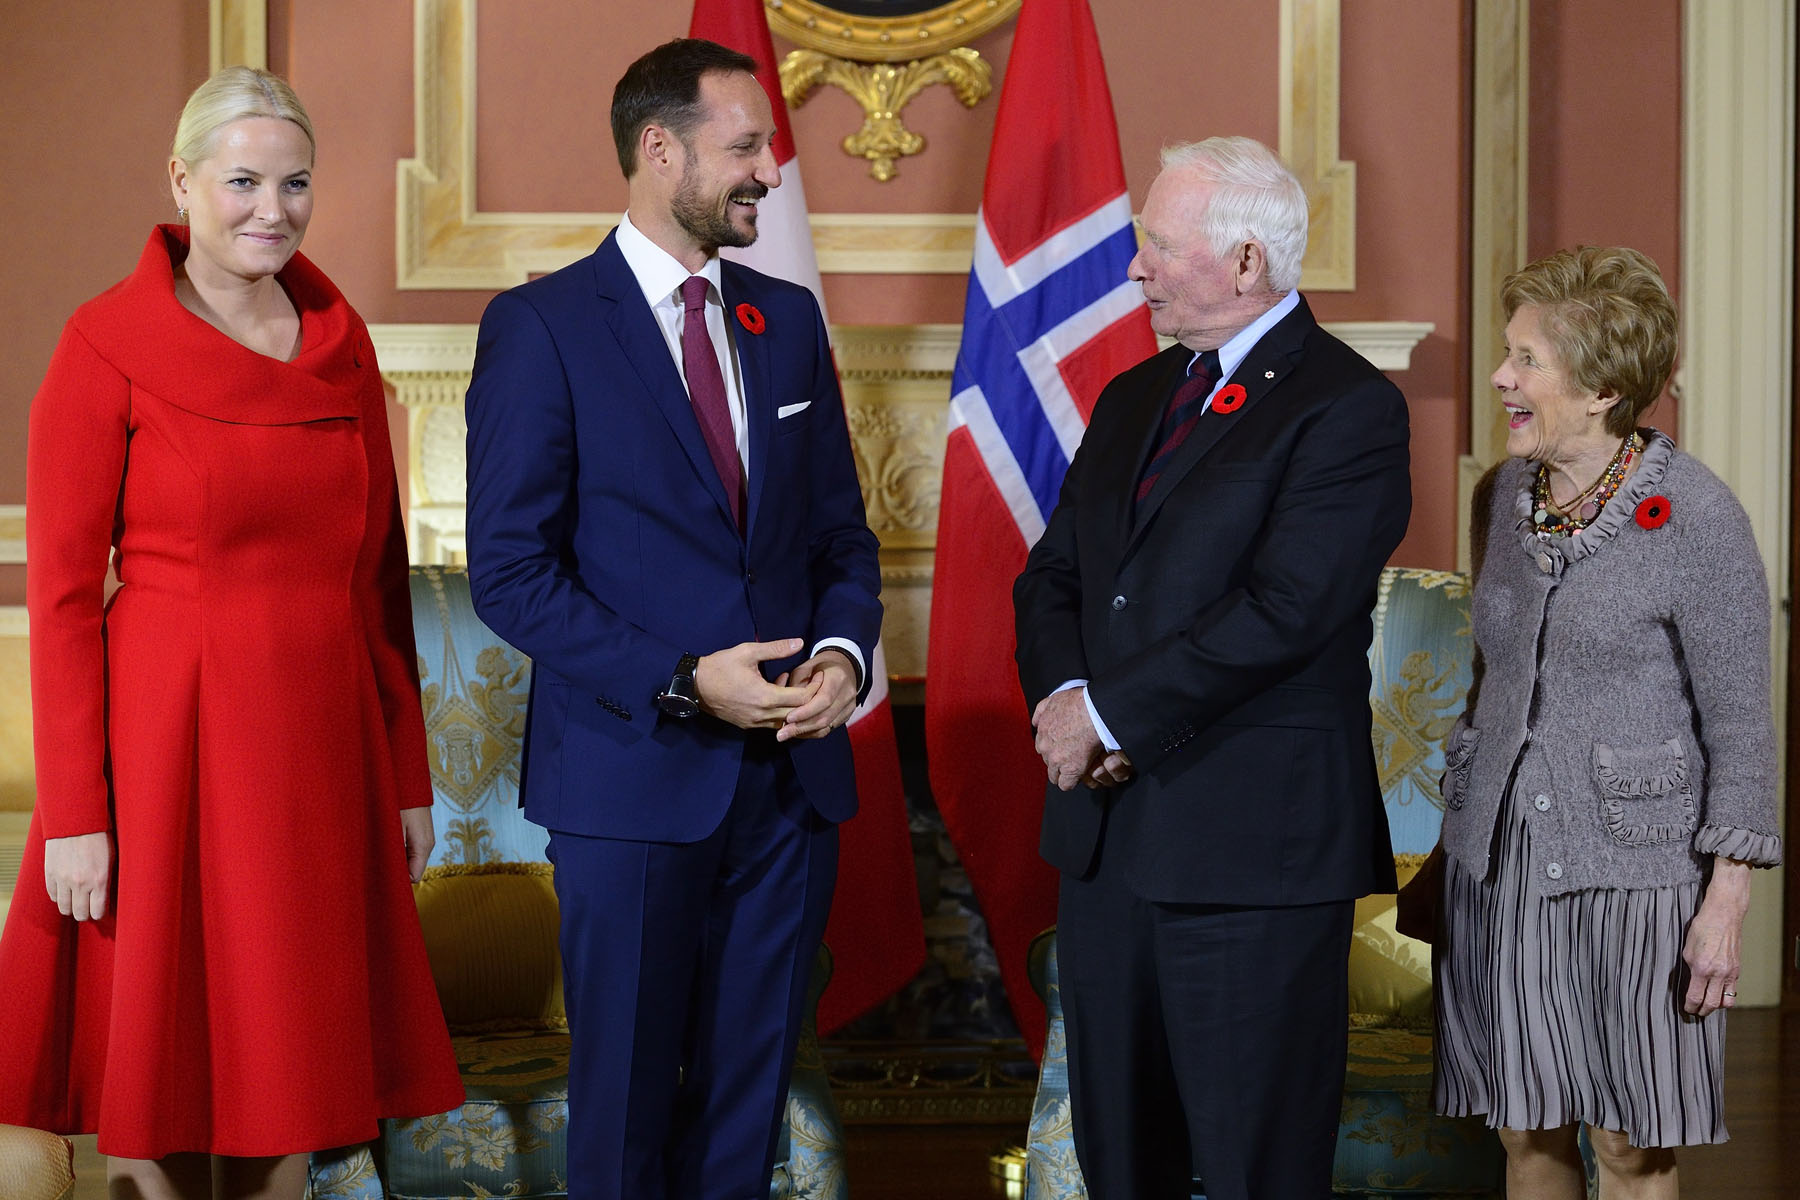 Afterwards, Their Excellencies met with Their Royal Highnesses to discuss Canada-Norway relations.